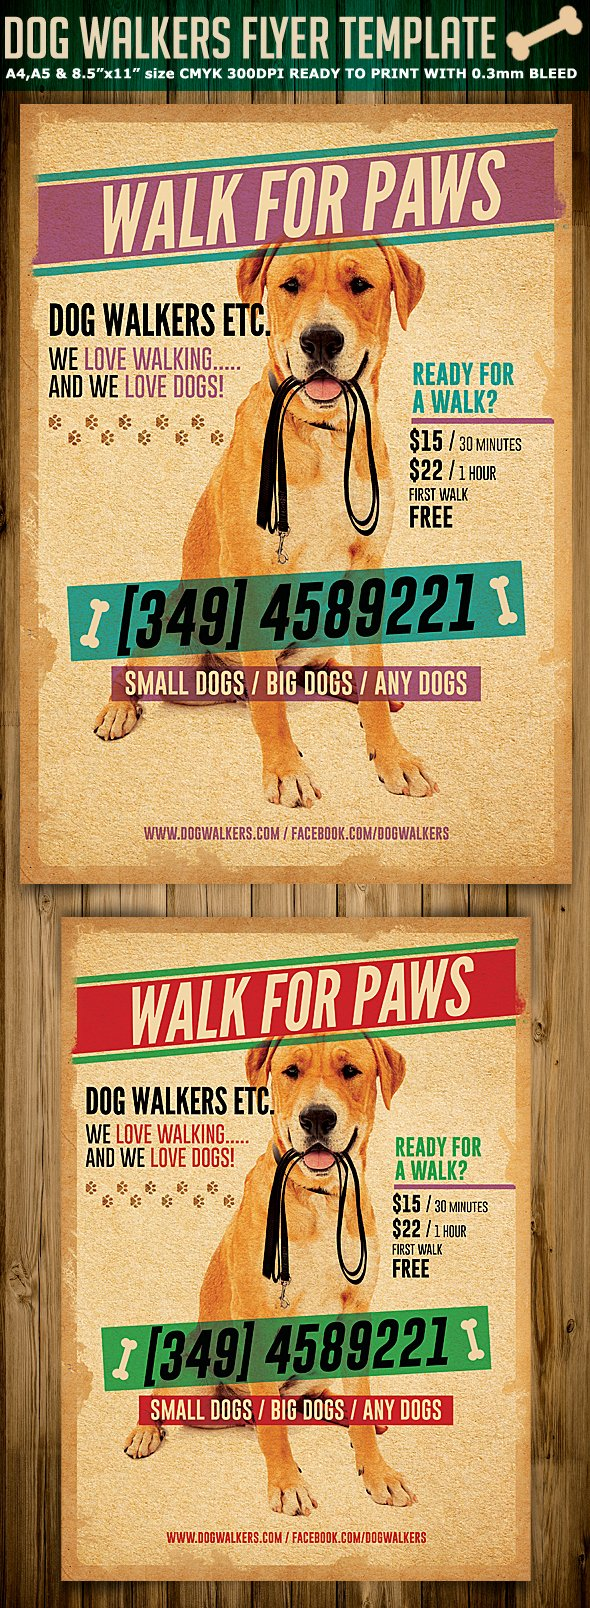 Dog Walking Flyer Template Beautiful Dog Walkers Flyer Template 2 On Behance